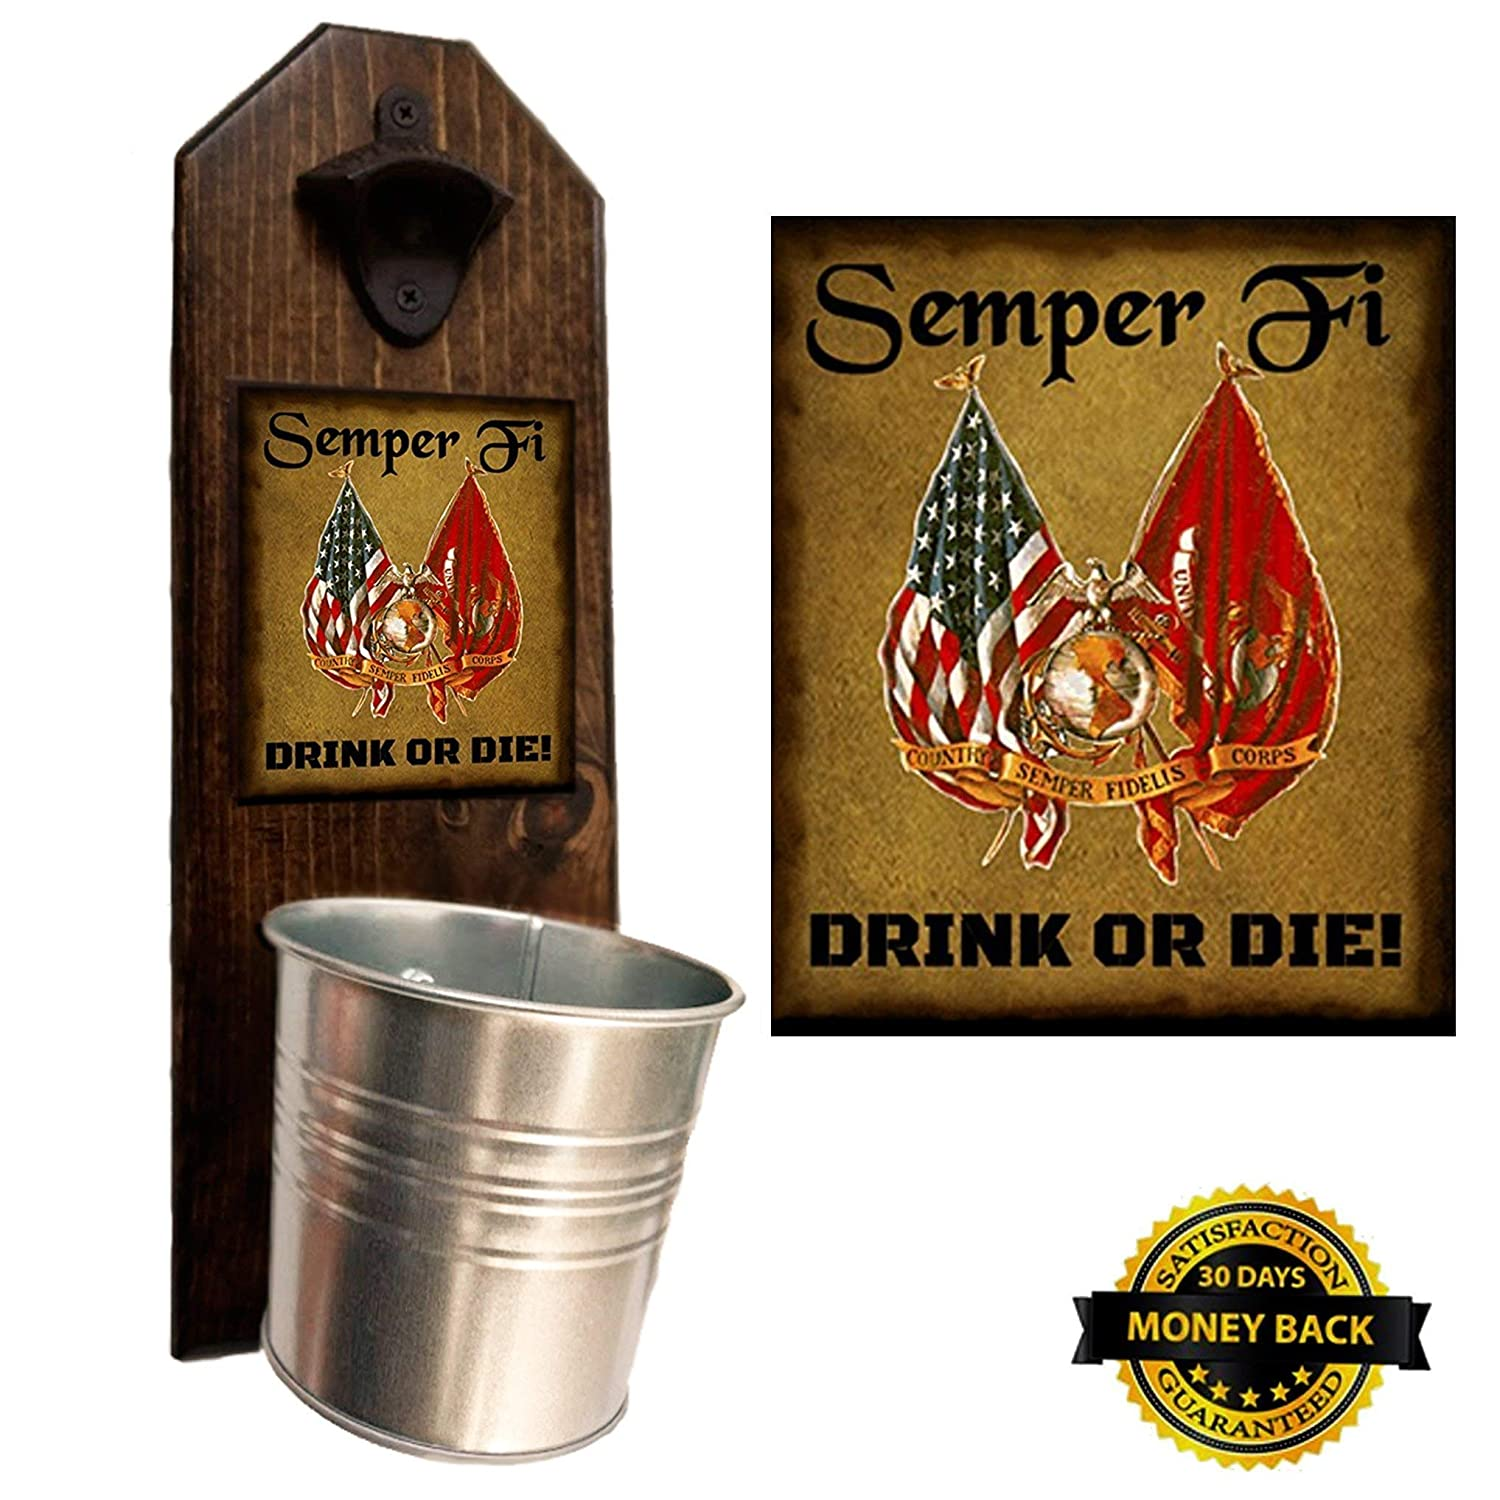 Marine Semper Fi Bottle Opener and Cap Catcher, Wall Mounted - Handcrafted by a Vet - Solid Pine, Rustic Cast Iron Opener & Galvanized Bucket - Great Dad Gift - Semper Fi!